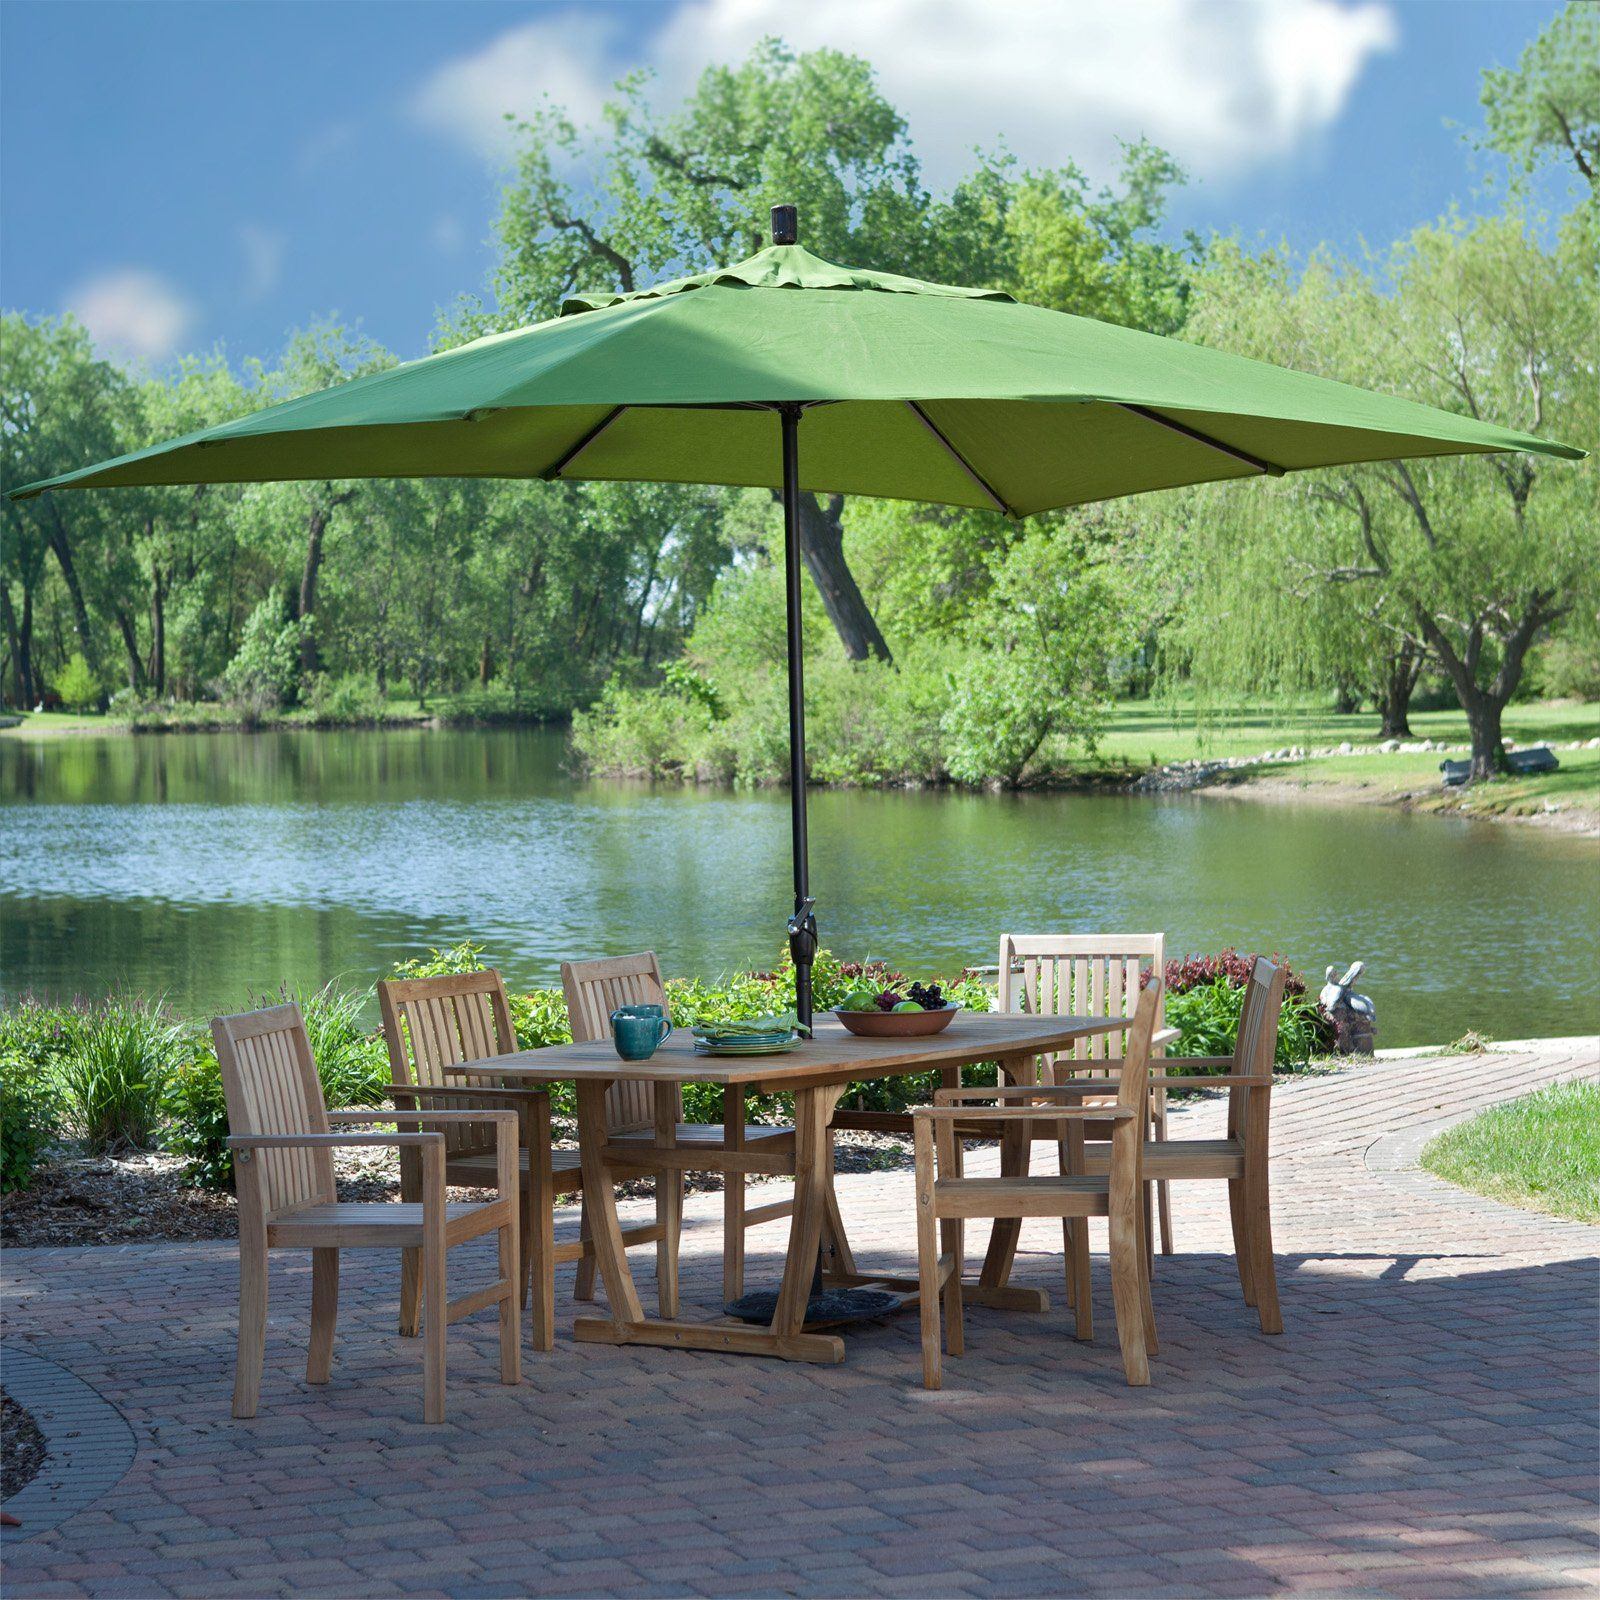 Have To Have It. Coral Coast 8 X 11 Ft. Rectangle Patio Umbrella $179.99